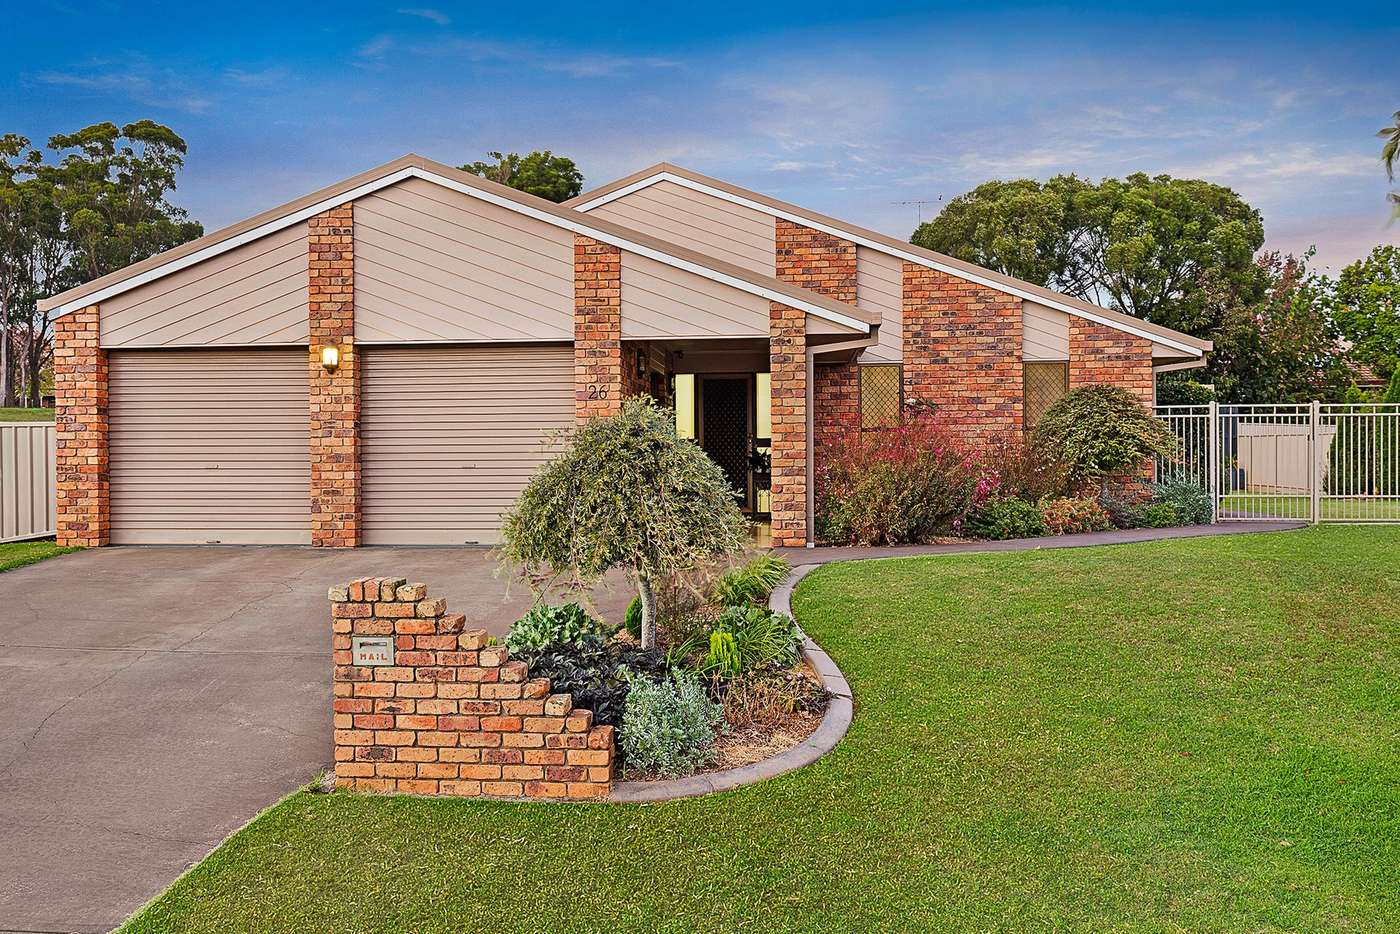 Main view of Homely house listing, 26 Belah Street, Rangeville QLD 4350